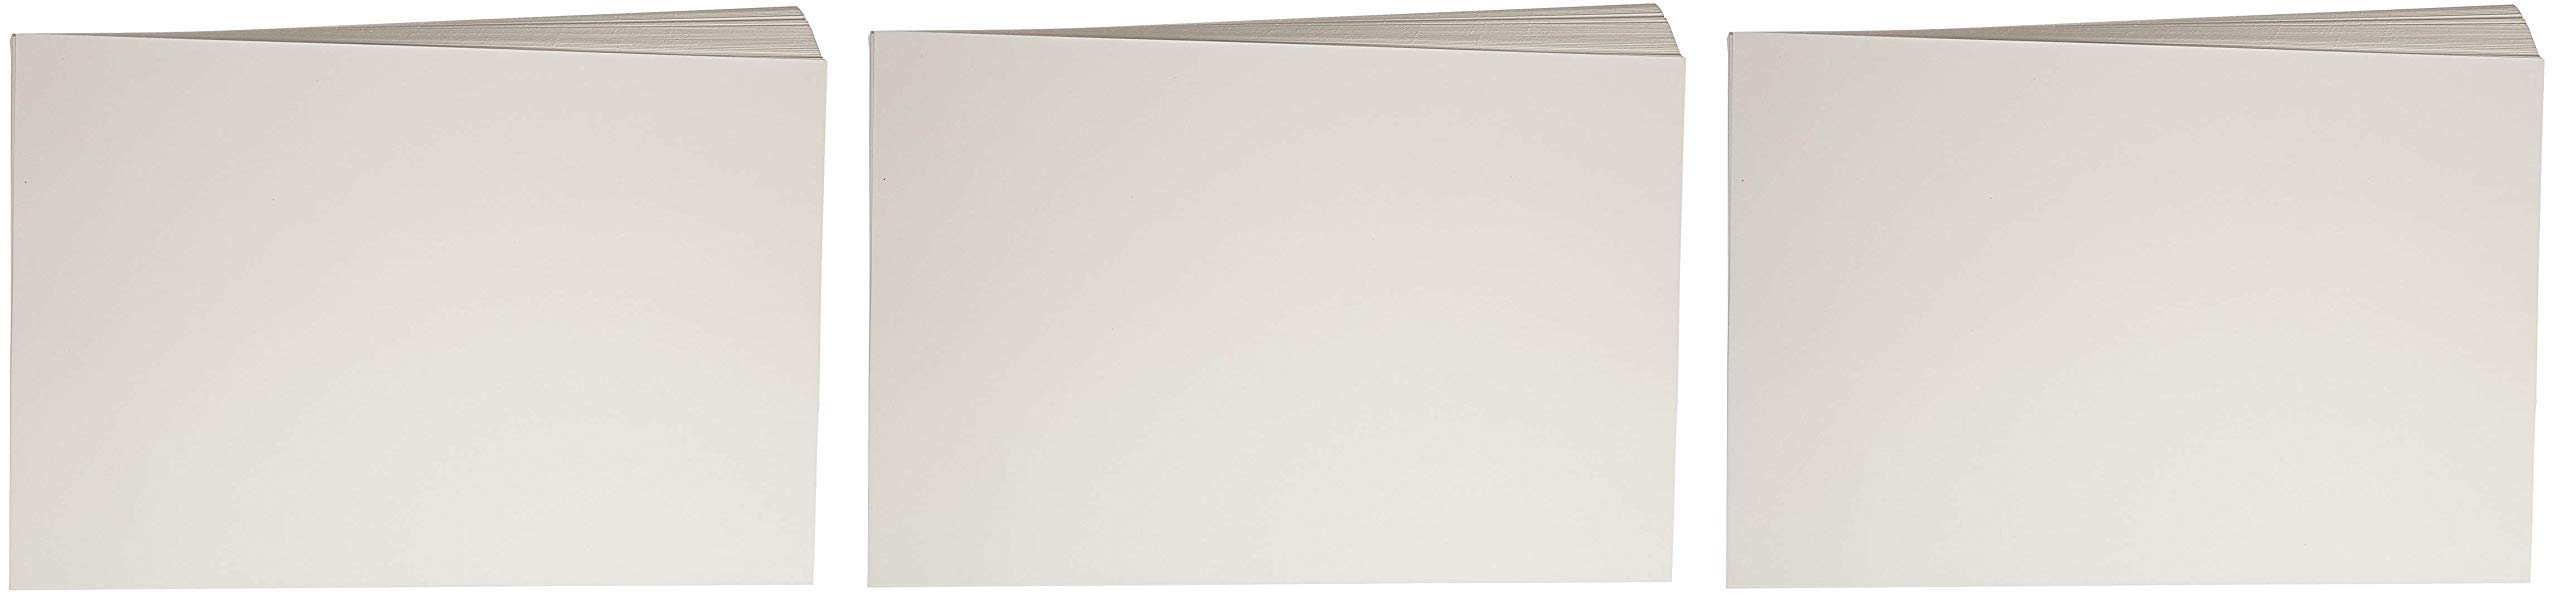 Sax Beginner Watercolor Paper, 12 x 18 Inches, 90 lb, Natural White, 100 Sheets (3 X 100 Sheets)